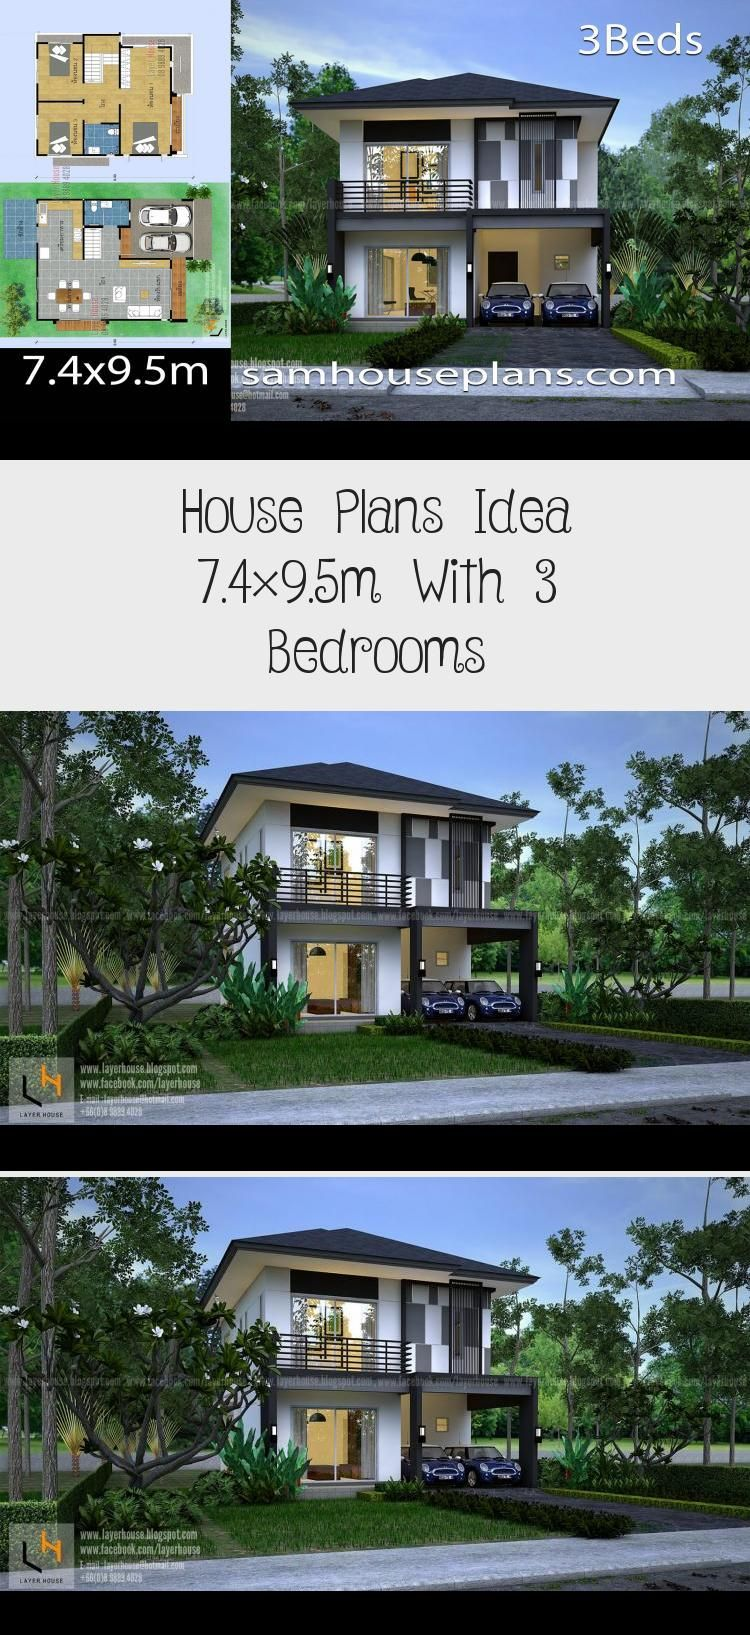 House Plans Idea 7 4x9 5m With 3 Bedrooms Sam House Plans Modernhouseplans2018 Modernhouseplansrectangle In 2020 House Plans House Plans Australia Pool House Plans